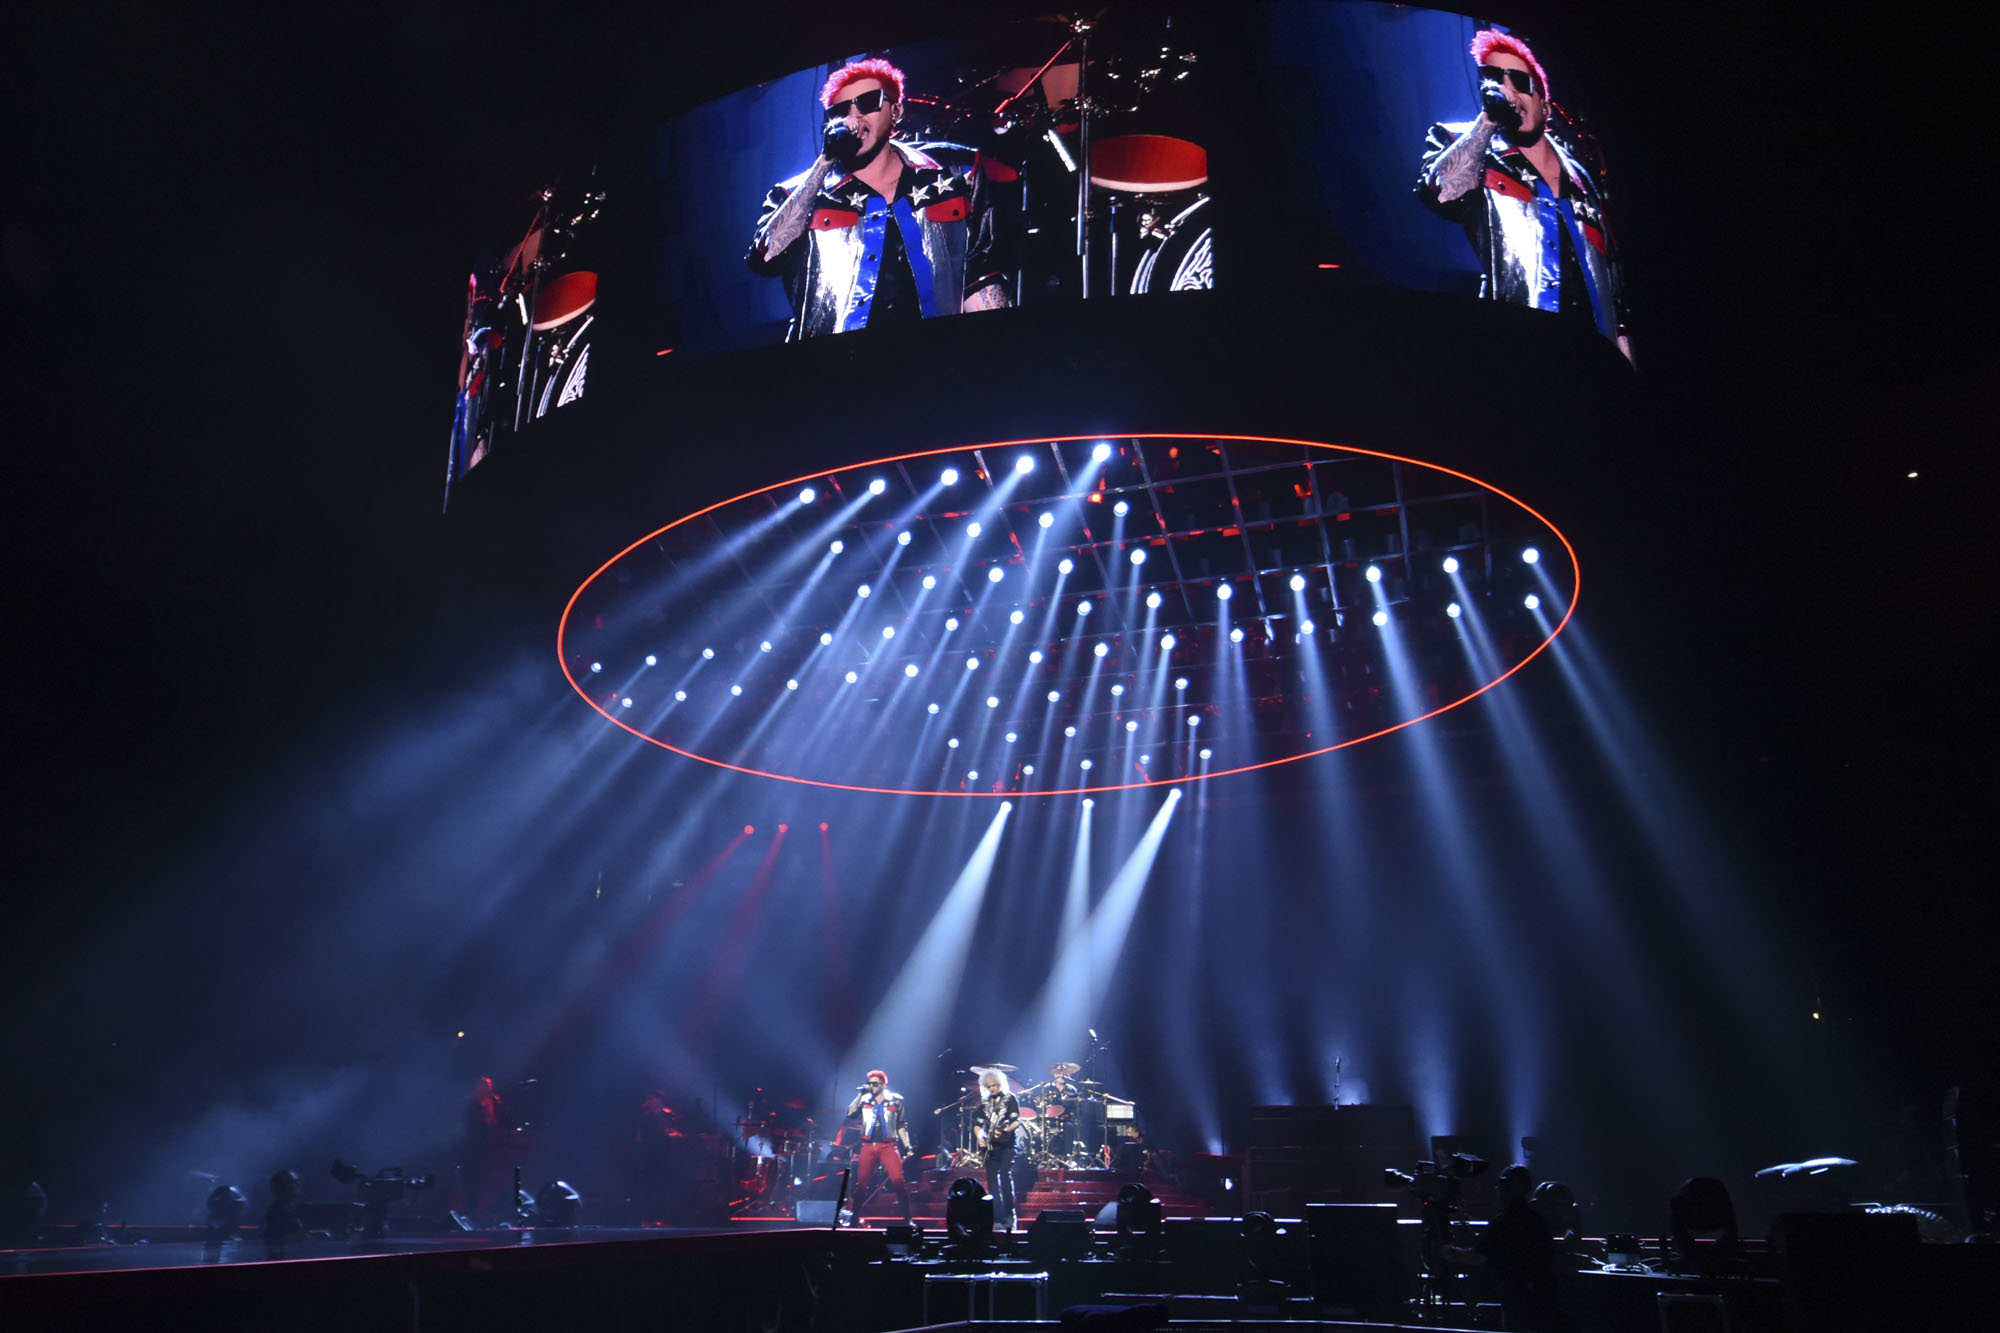 Tait Builds Elaborate Stage Set For Queen And Adam Lambert